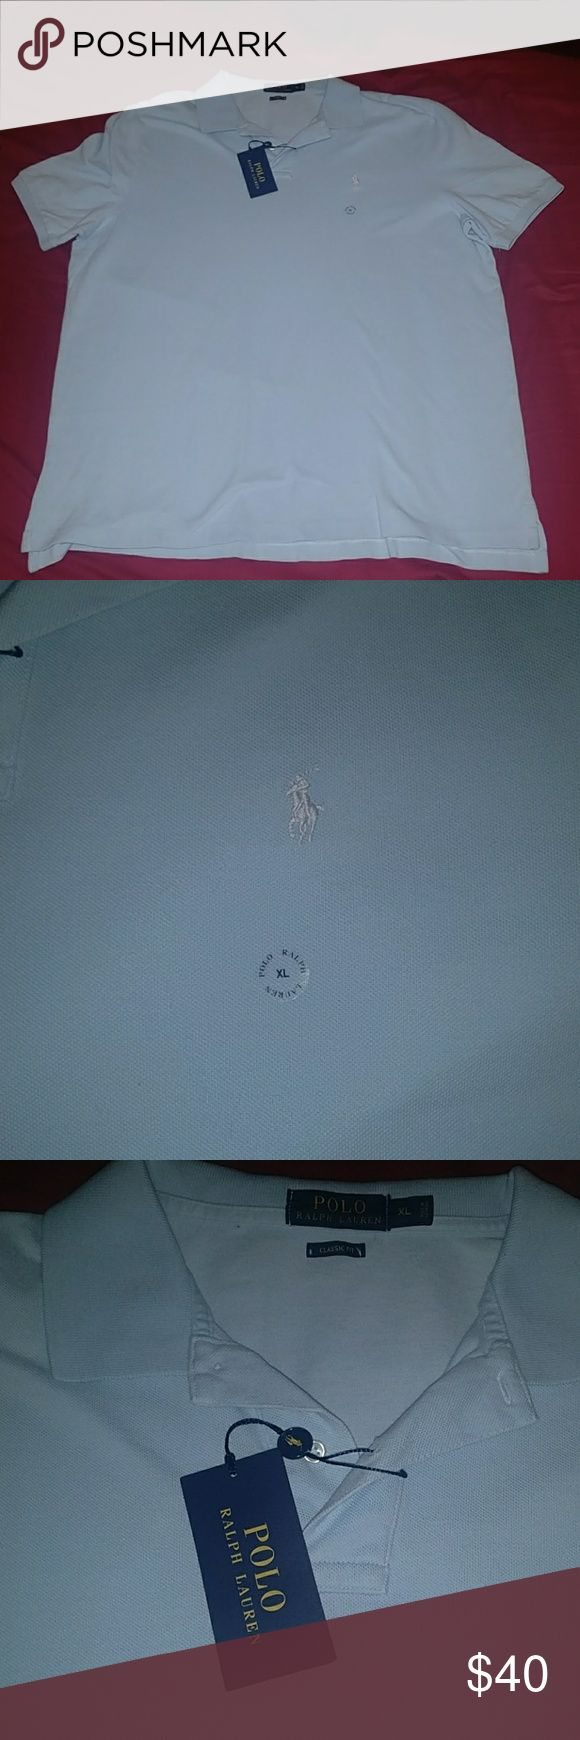 Polo ralph lauren polo Polo Ralph Lauren polo shirt brand new with tags Polo by Ralph Lauren Shirts Polos